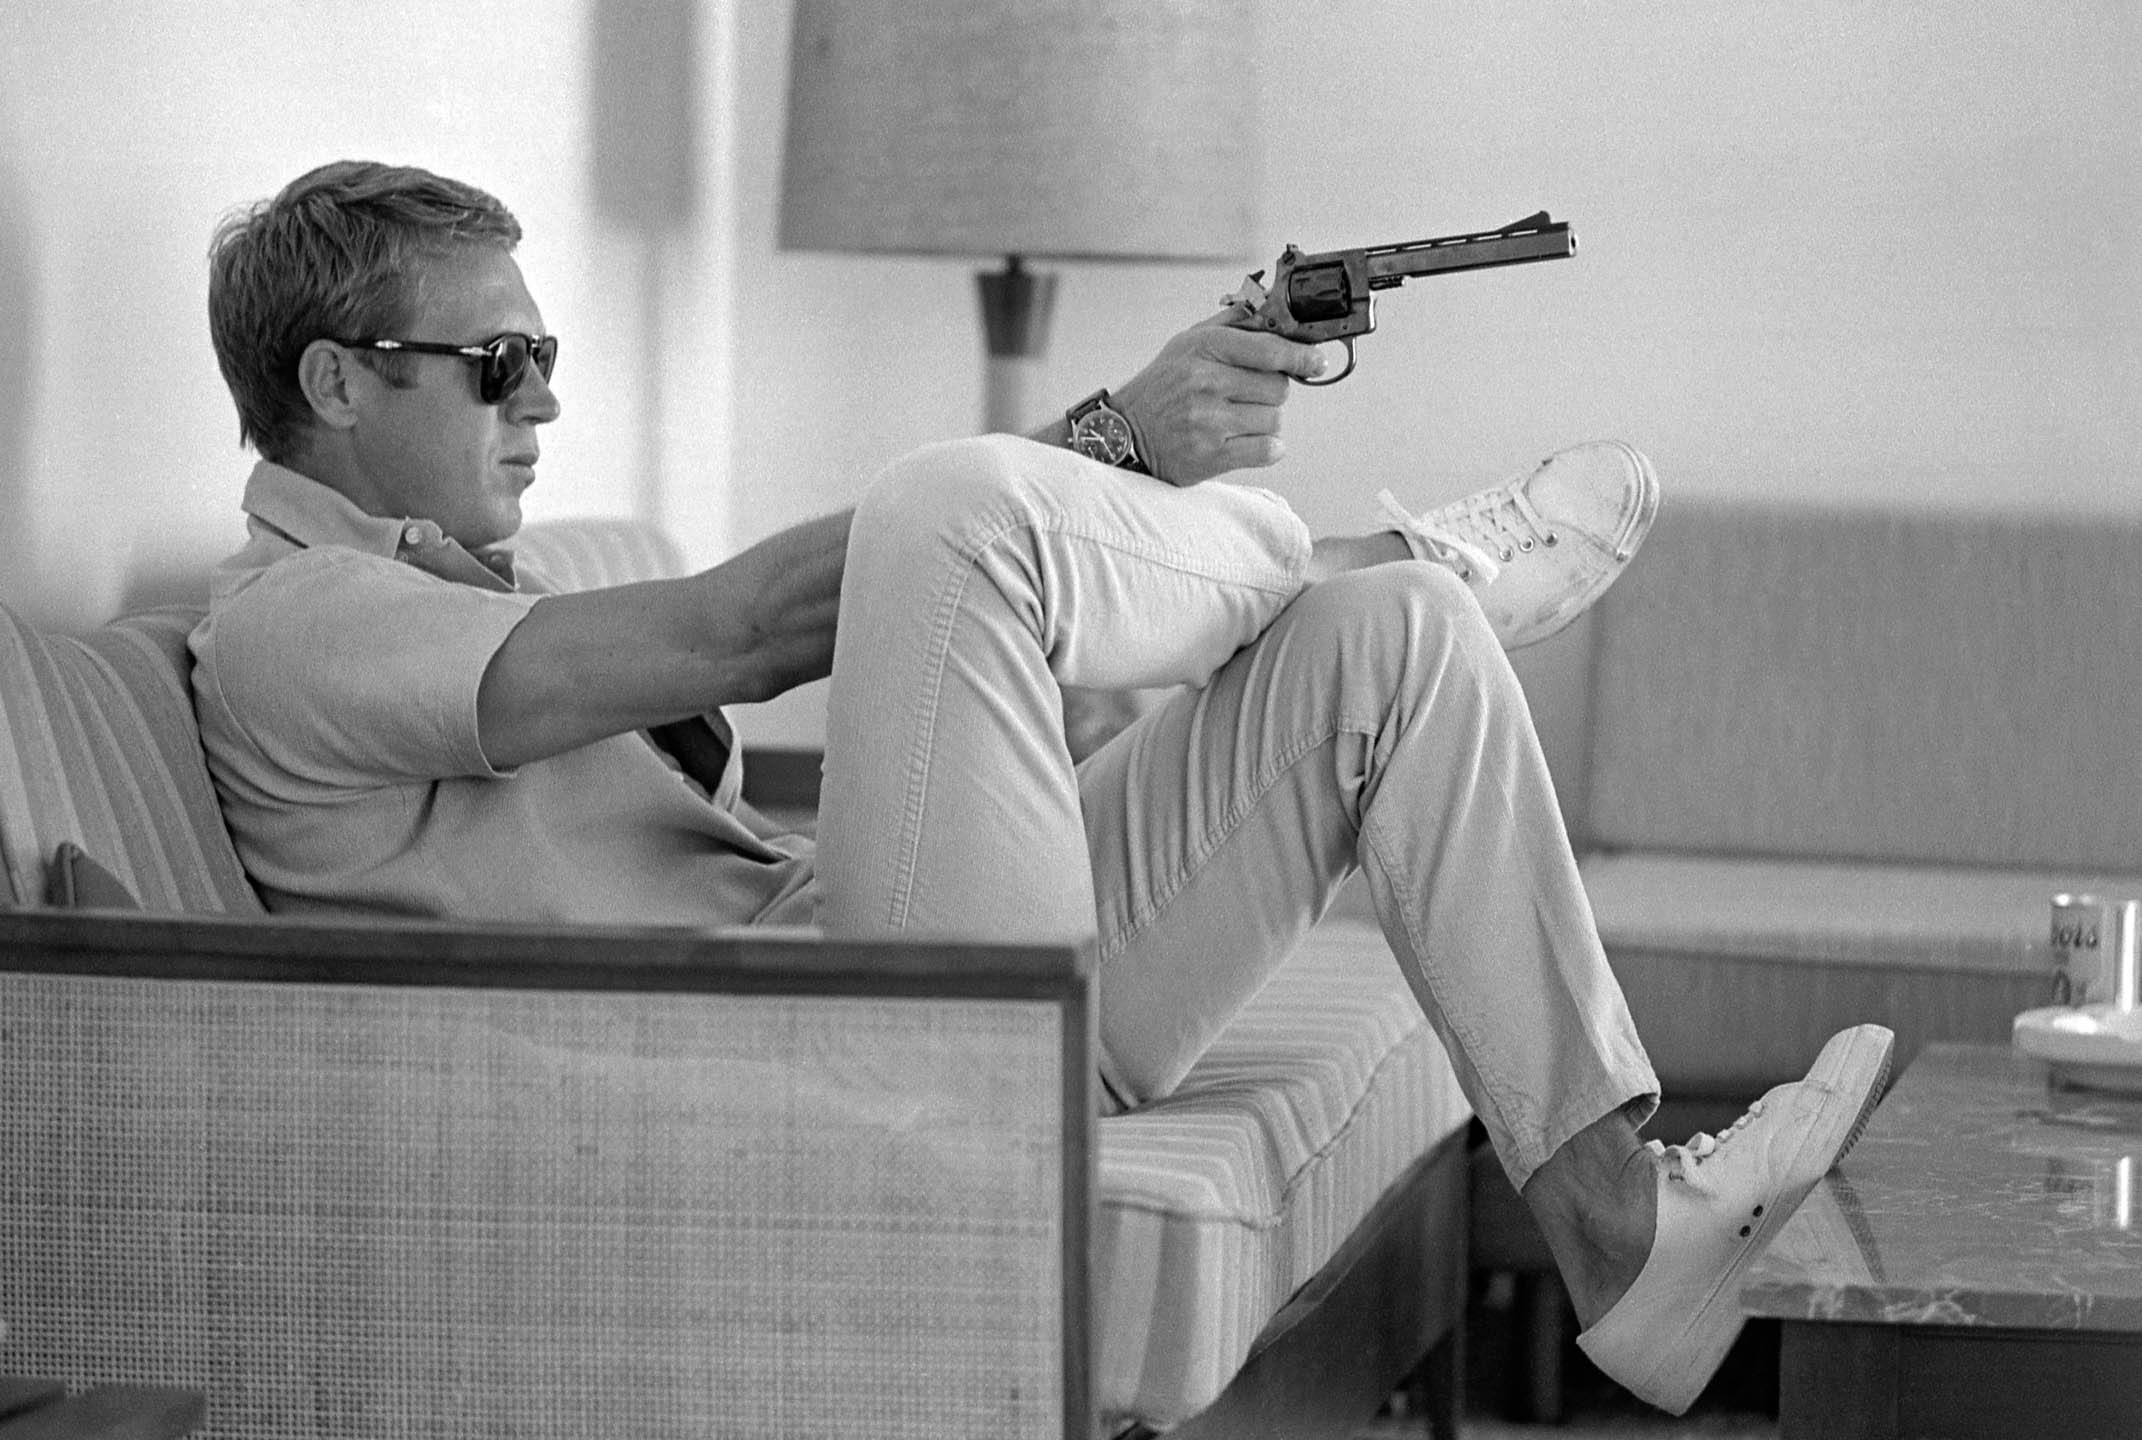 Steve McQueen aims a pistol in his living room.